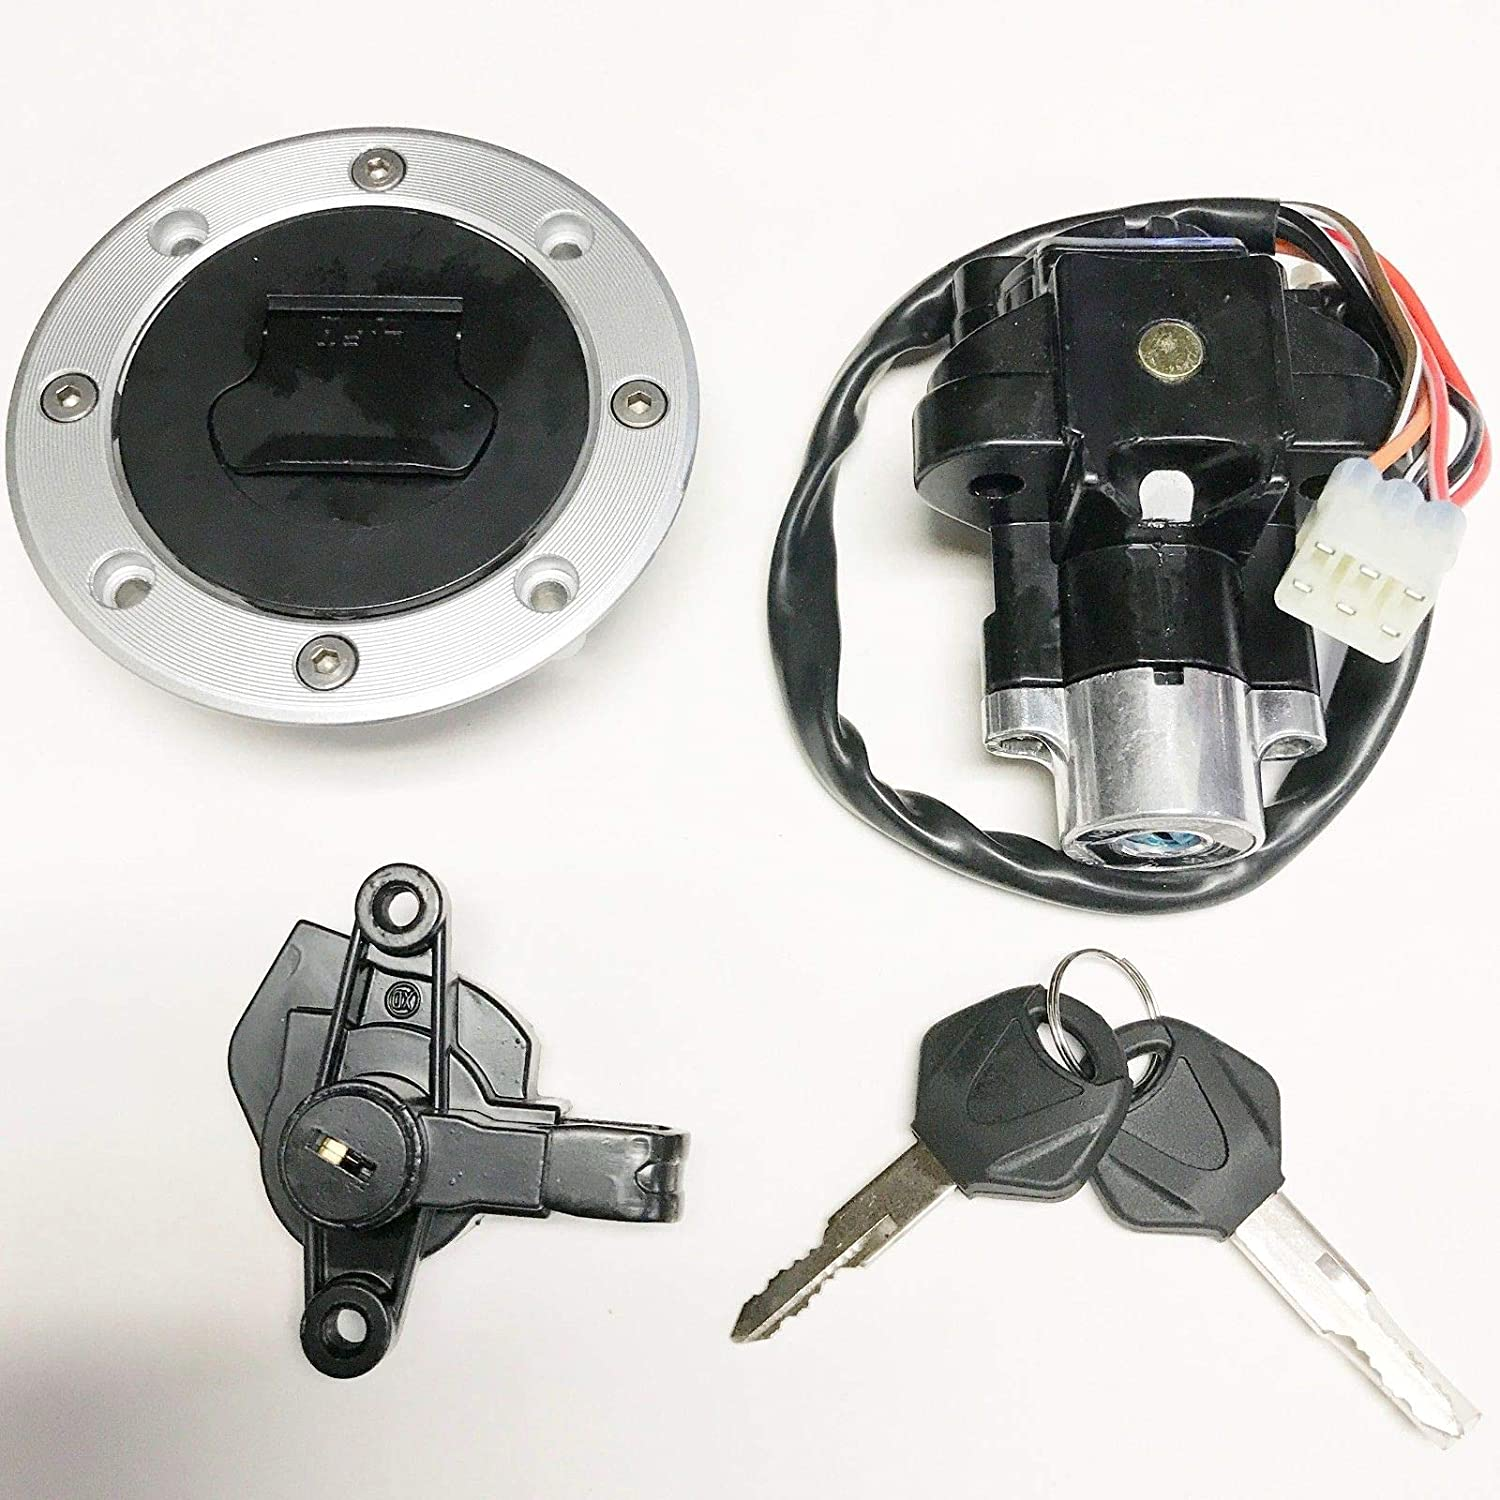 Ignition Switch Gas Cap Cover Key Set Suzuki Bandit 600 1200 GSF600S GSF1200 Unbranded